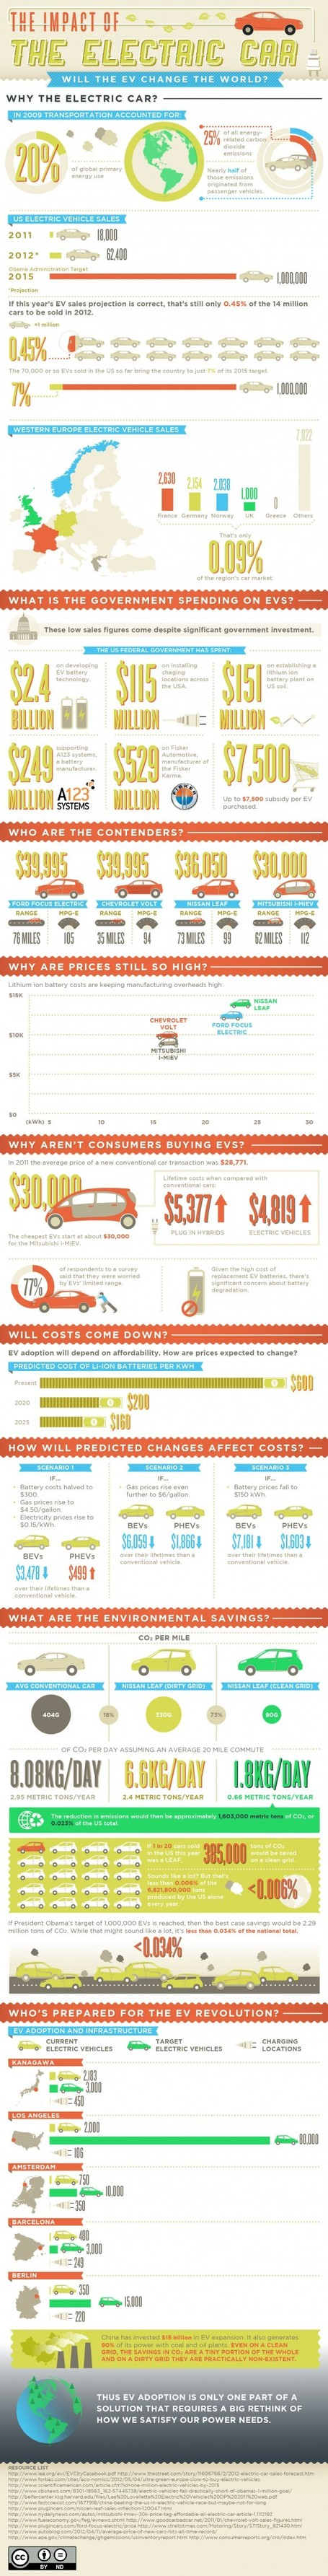 The Impact of the Electric Car [Infographic] | Développement durable et efficacité énergétique | Scoop.it